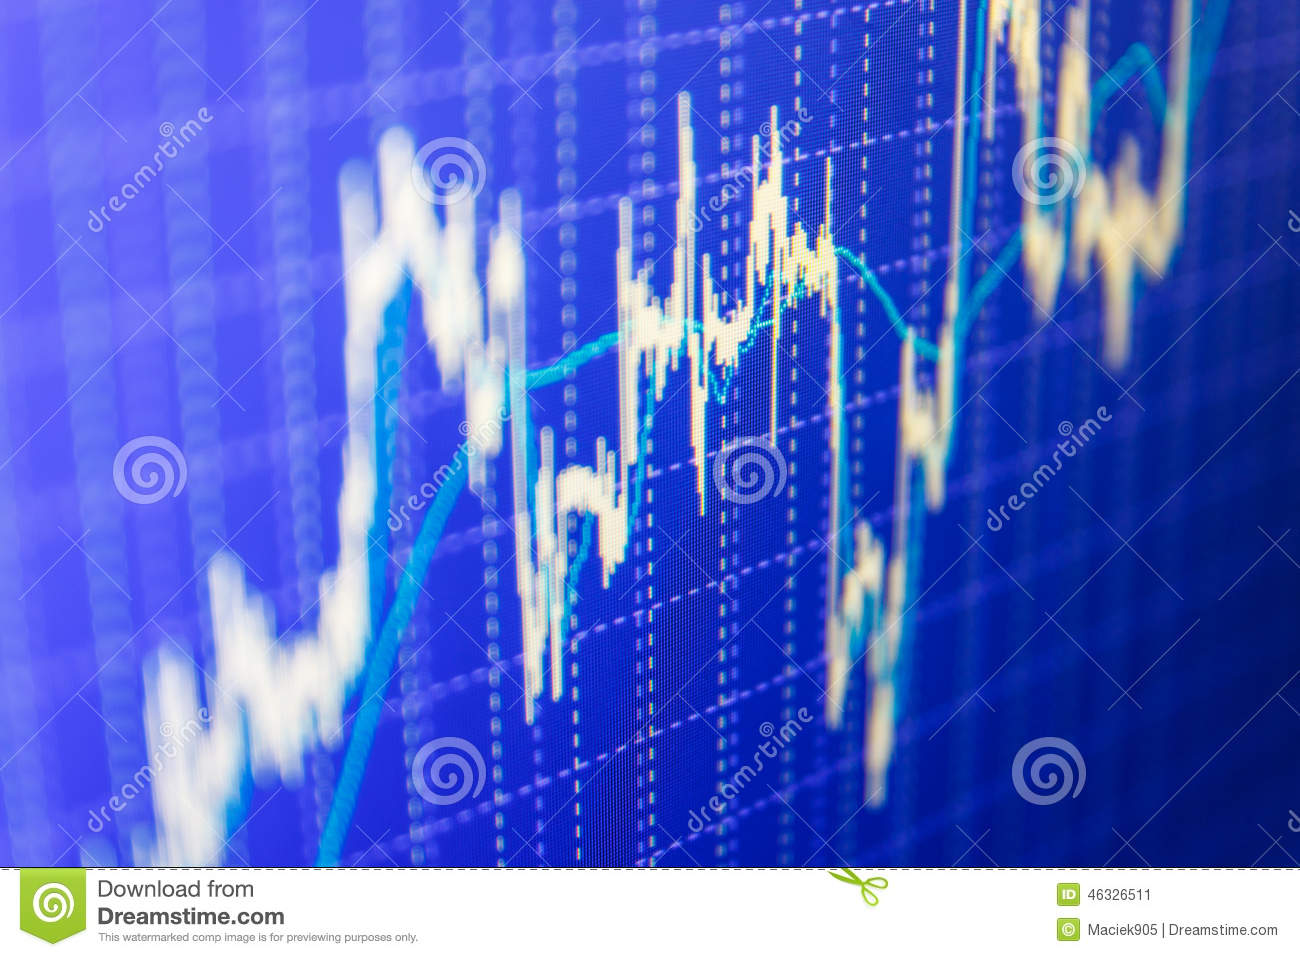 Historical forex quotes